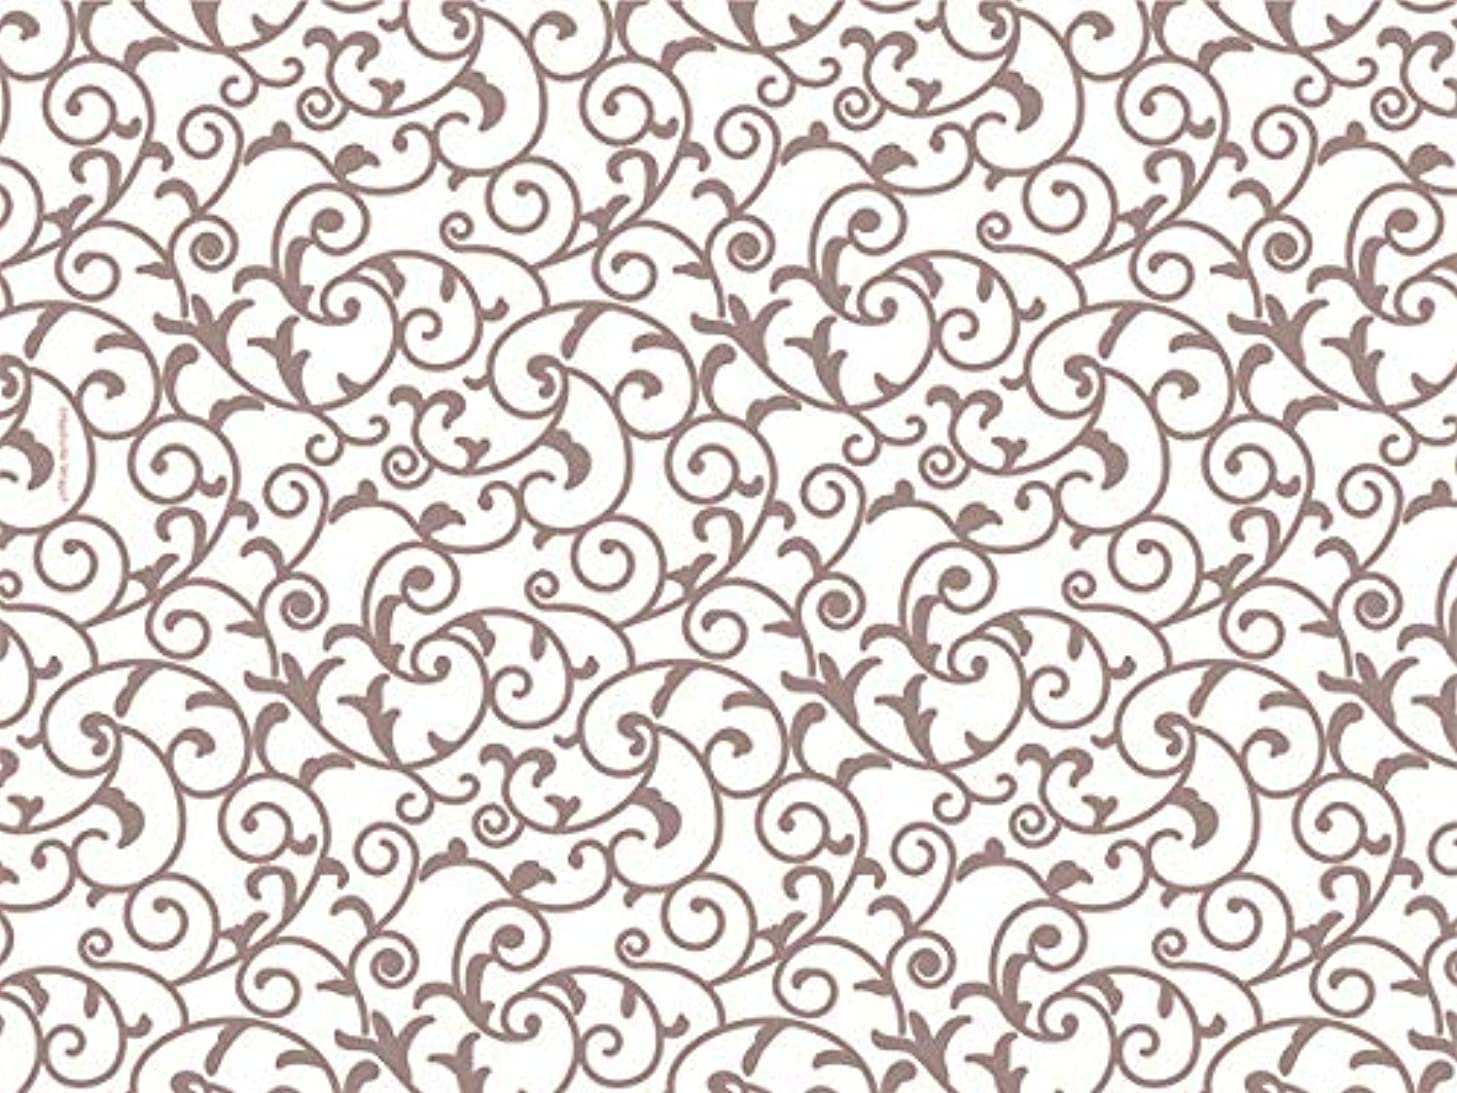 Rose Gold & Ivory White Scroll Tissue Paper 20 Inch X 30 Inch - 24 Sheets